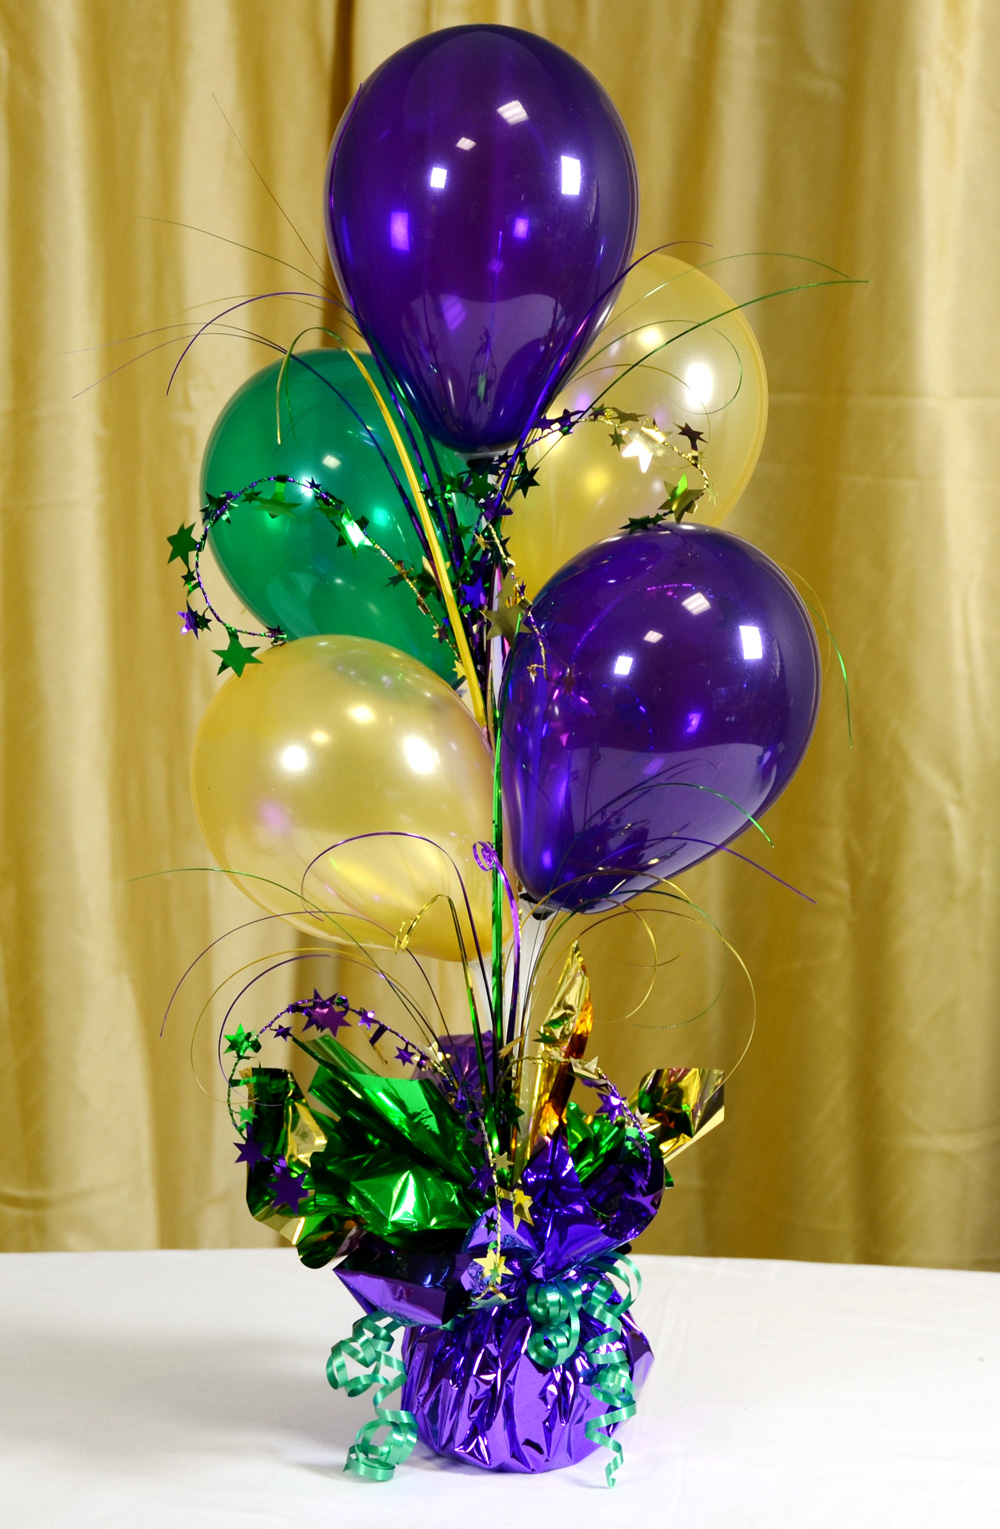 ... Centerpieces Party ideas by mardi gras outlet: air-filled balloon